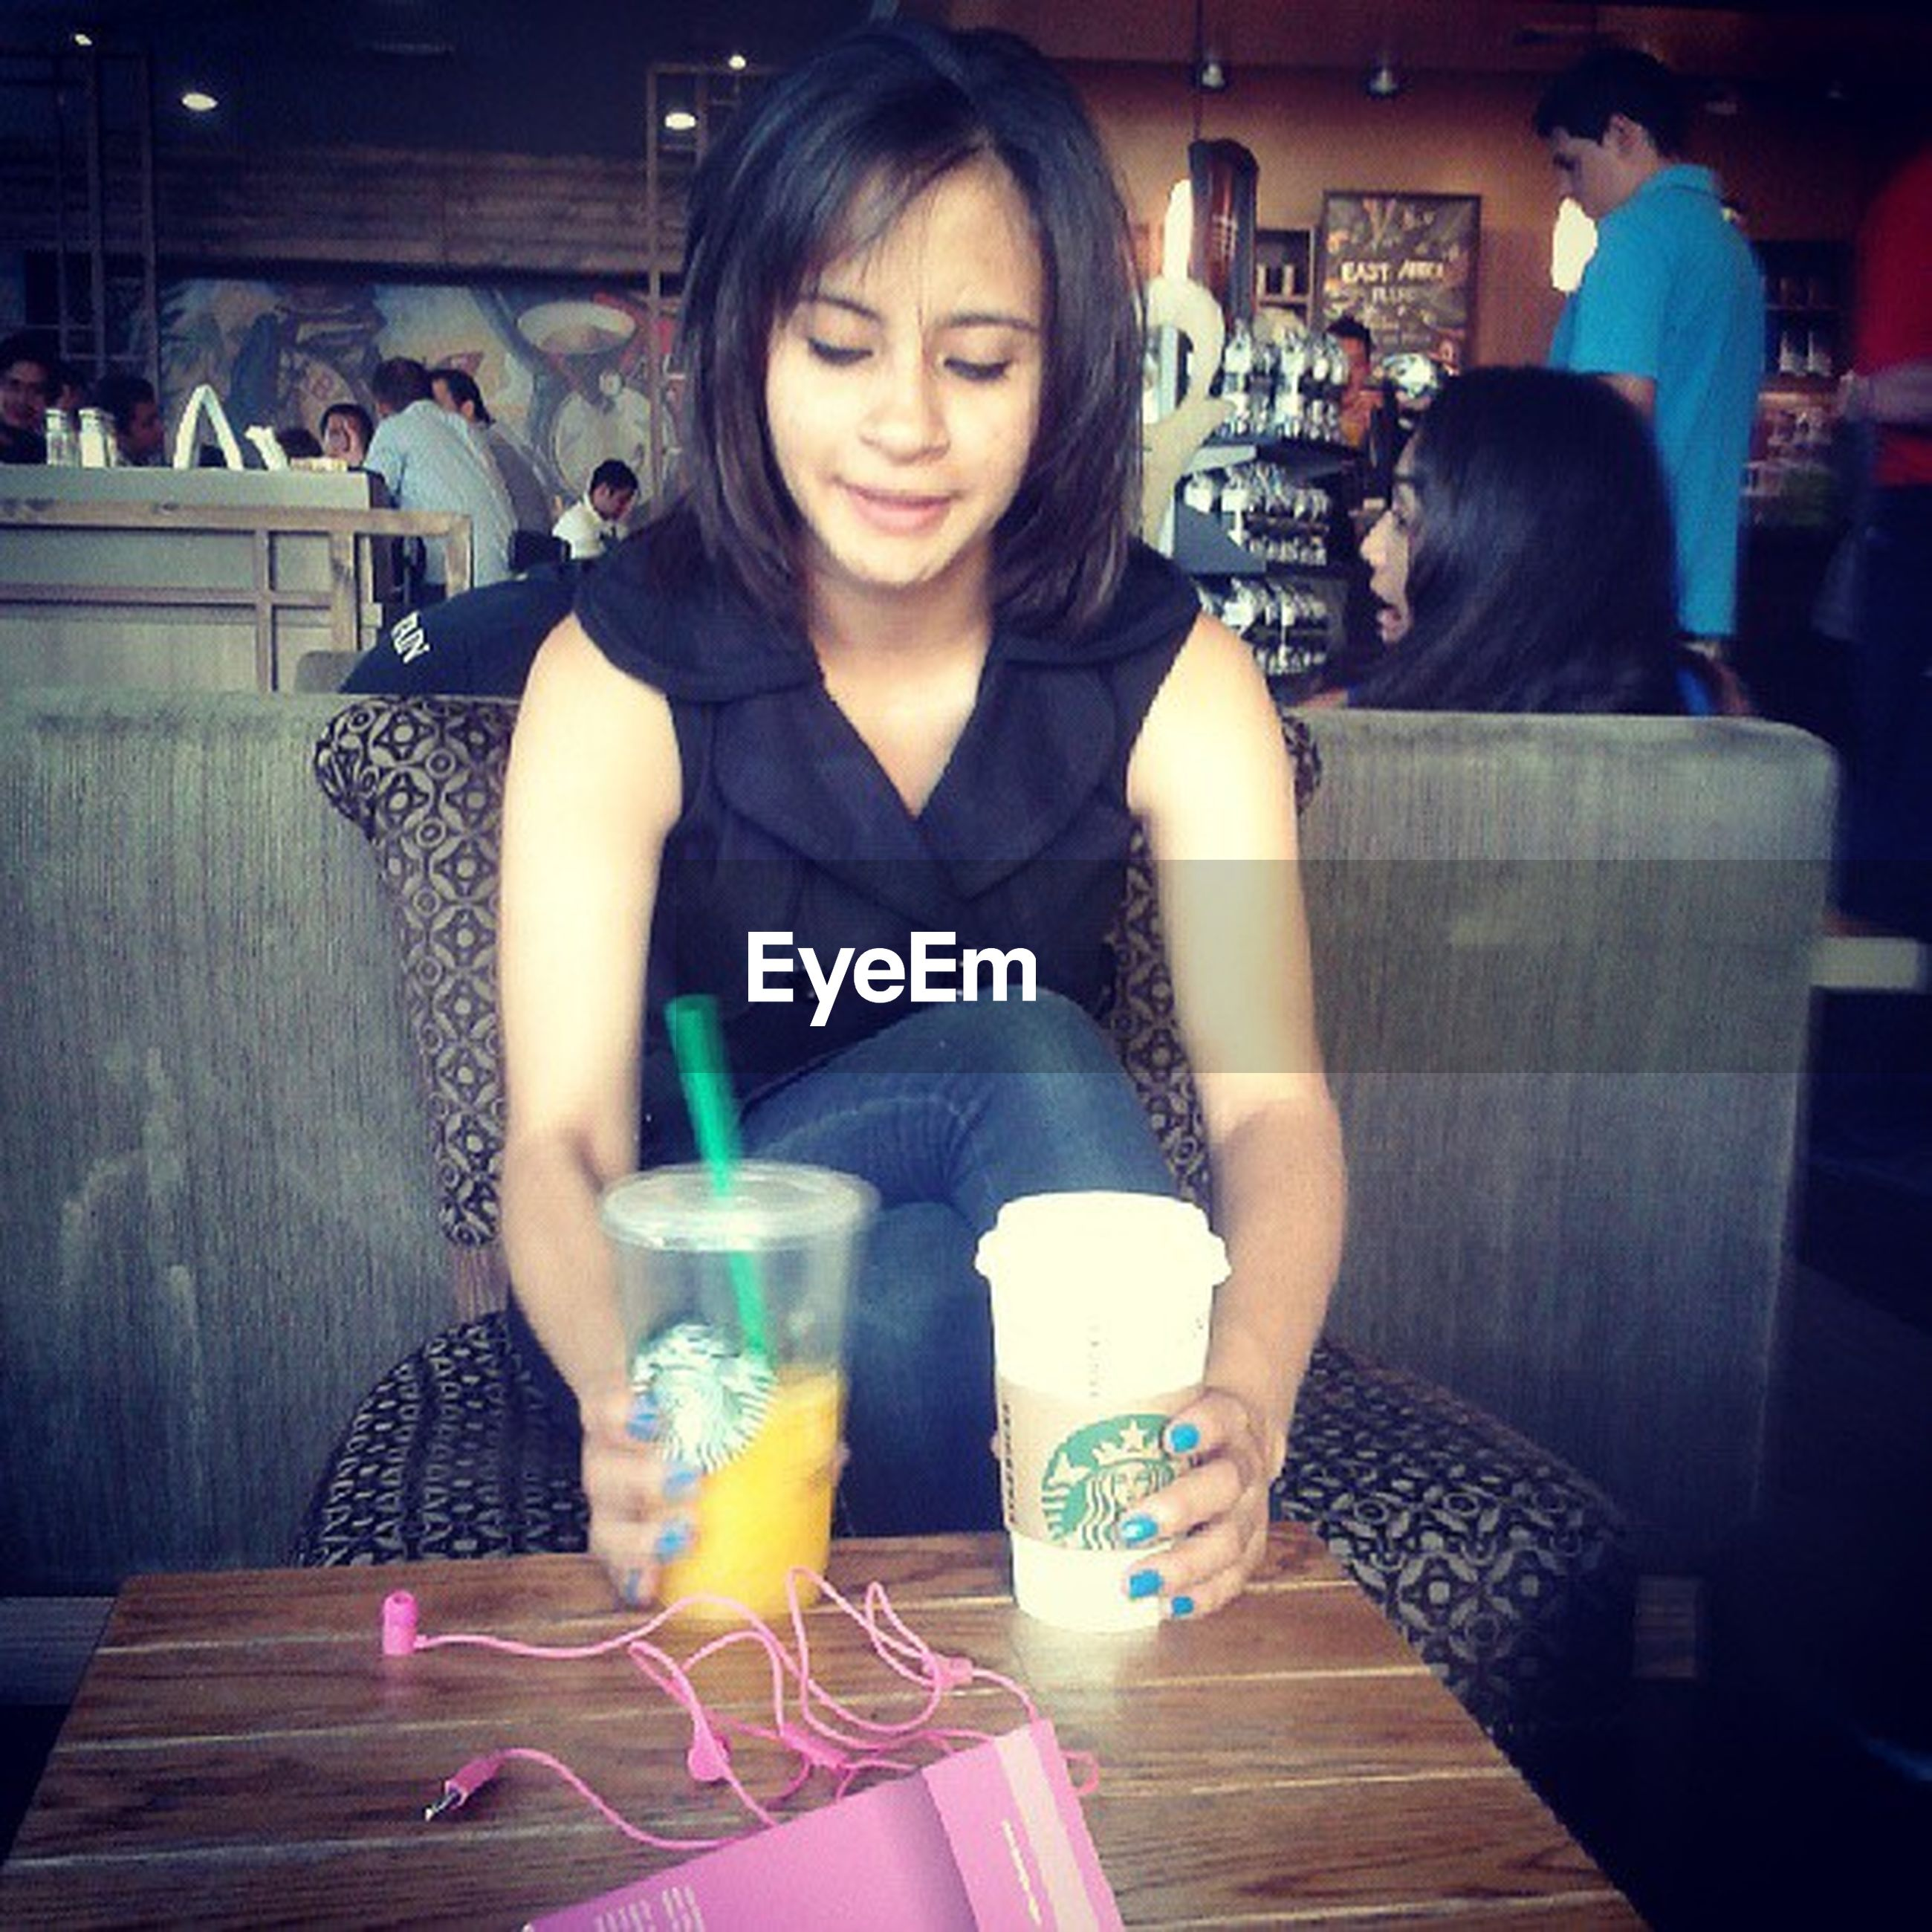 indoors, lifestyles, young adult, casual clothing, person, sitting, leisure activity, table, front view, young women, looking at camera, portrait, food and drink, restaurant, smiling, drink, standing, three quarter length